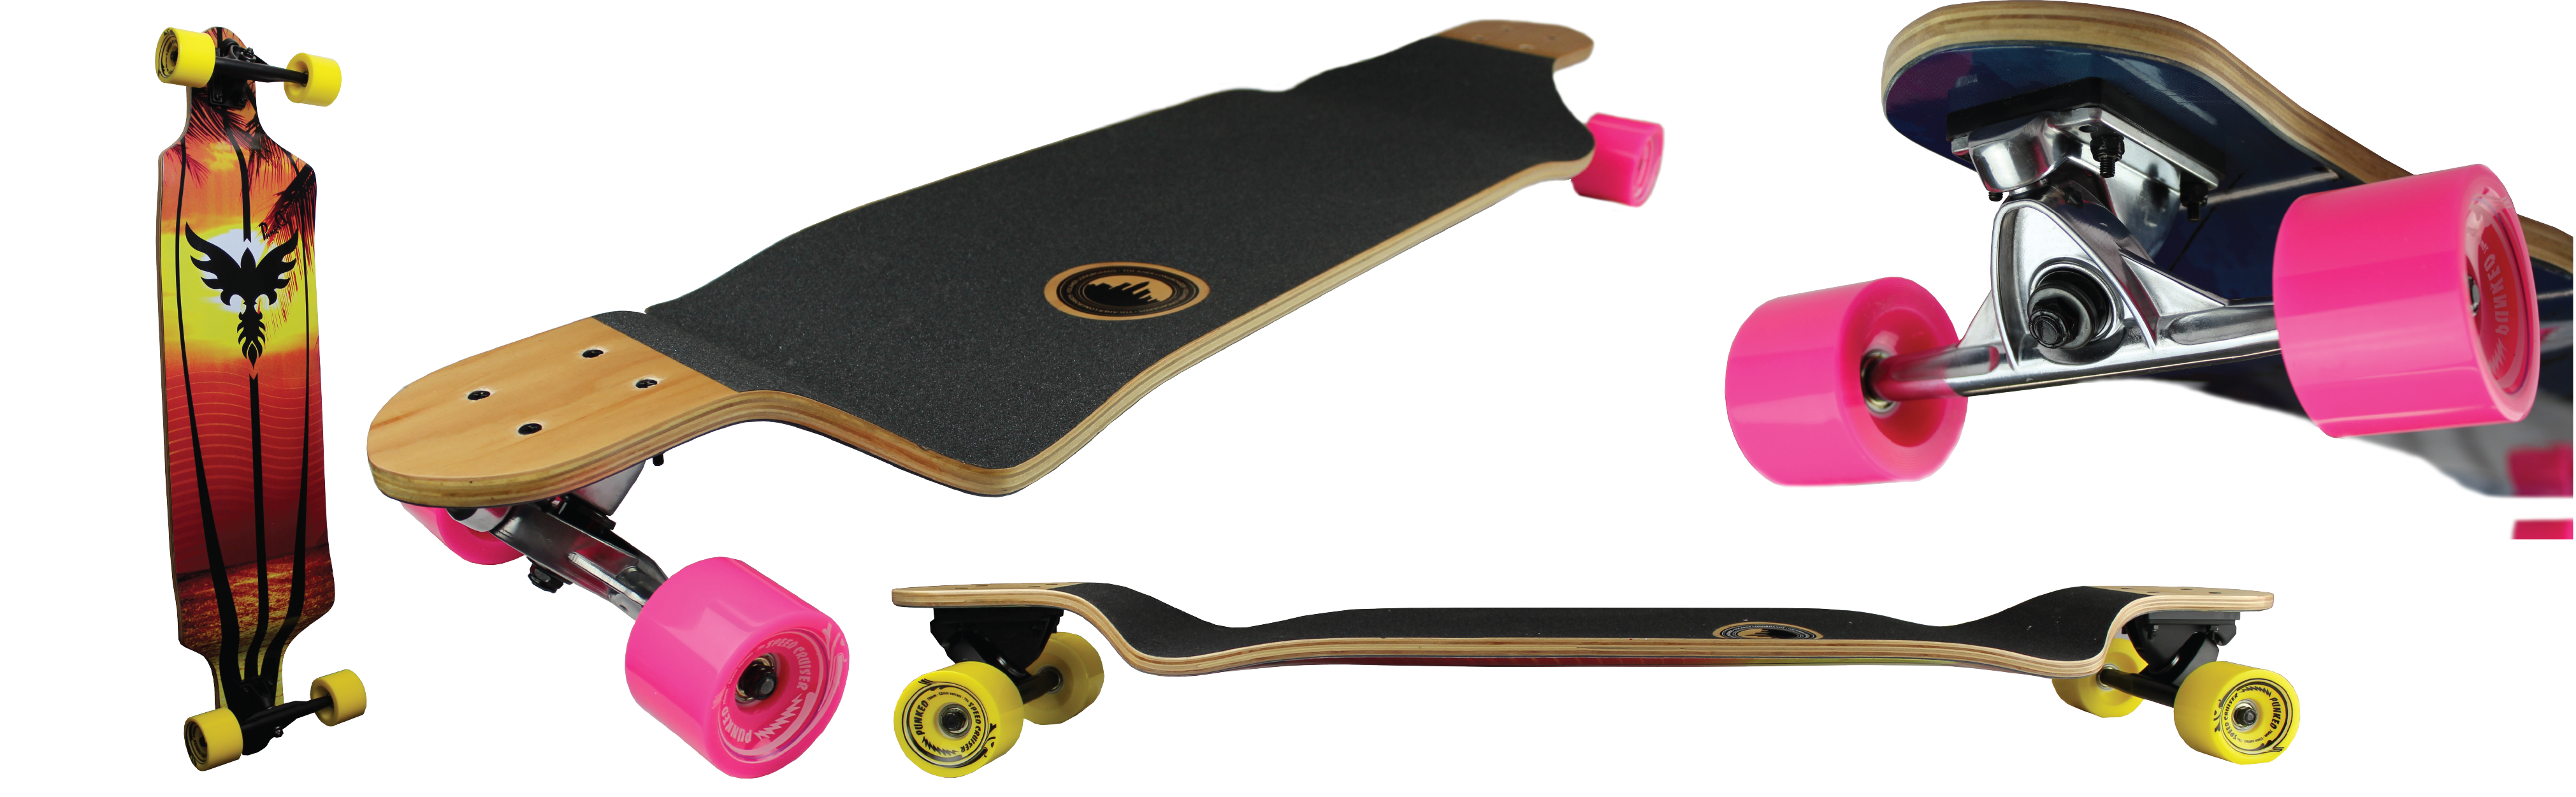 Yocaher Graphic Complete Skateboard Checker Yellow